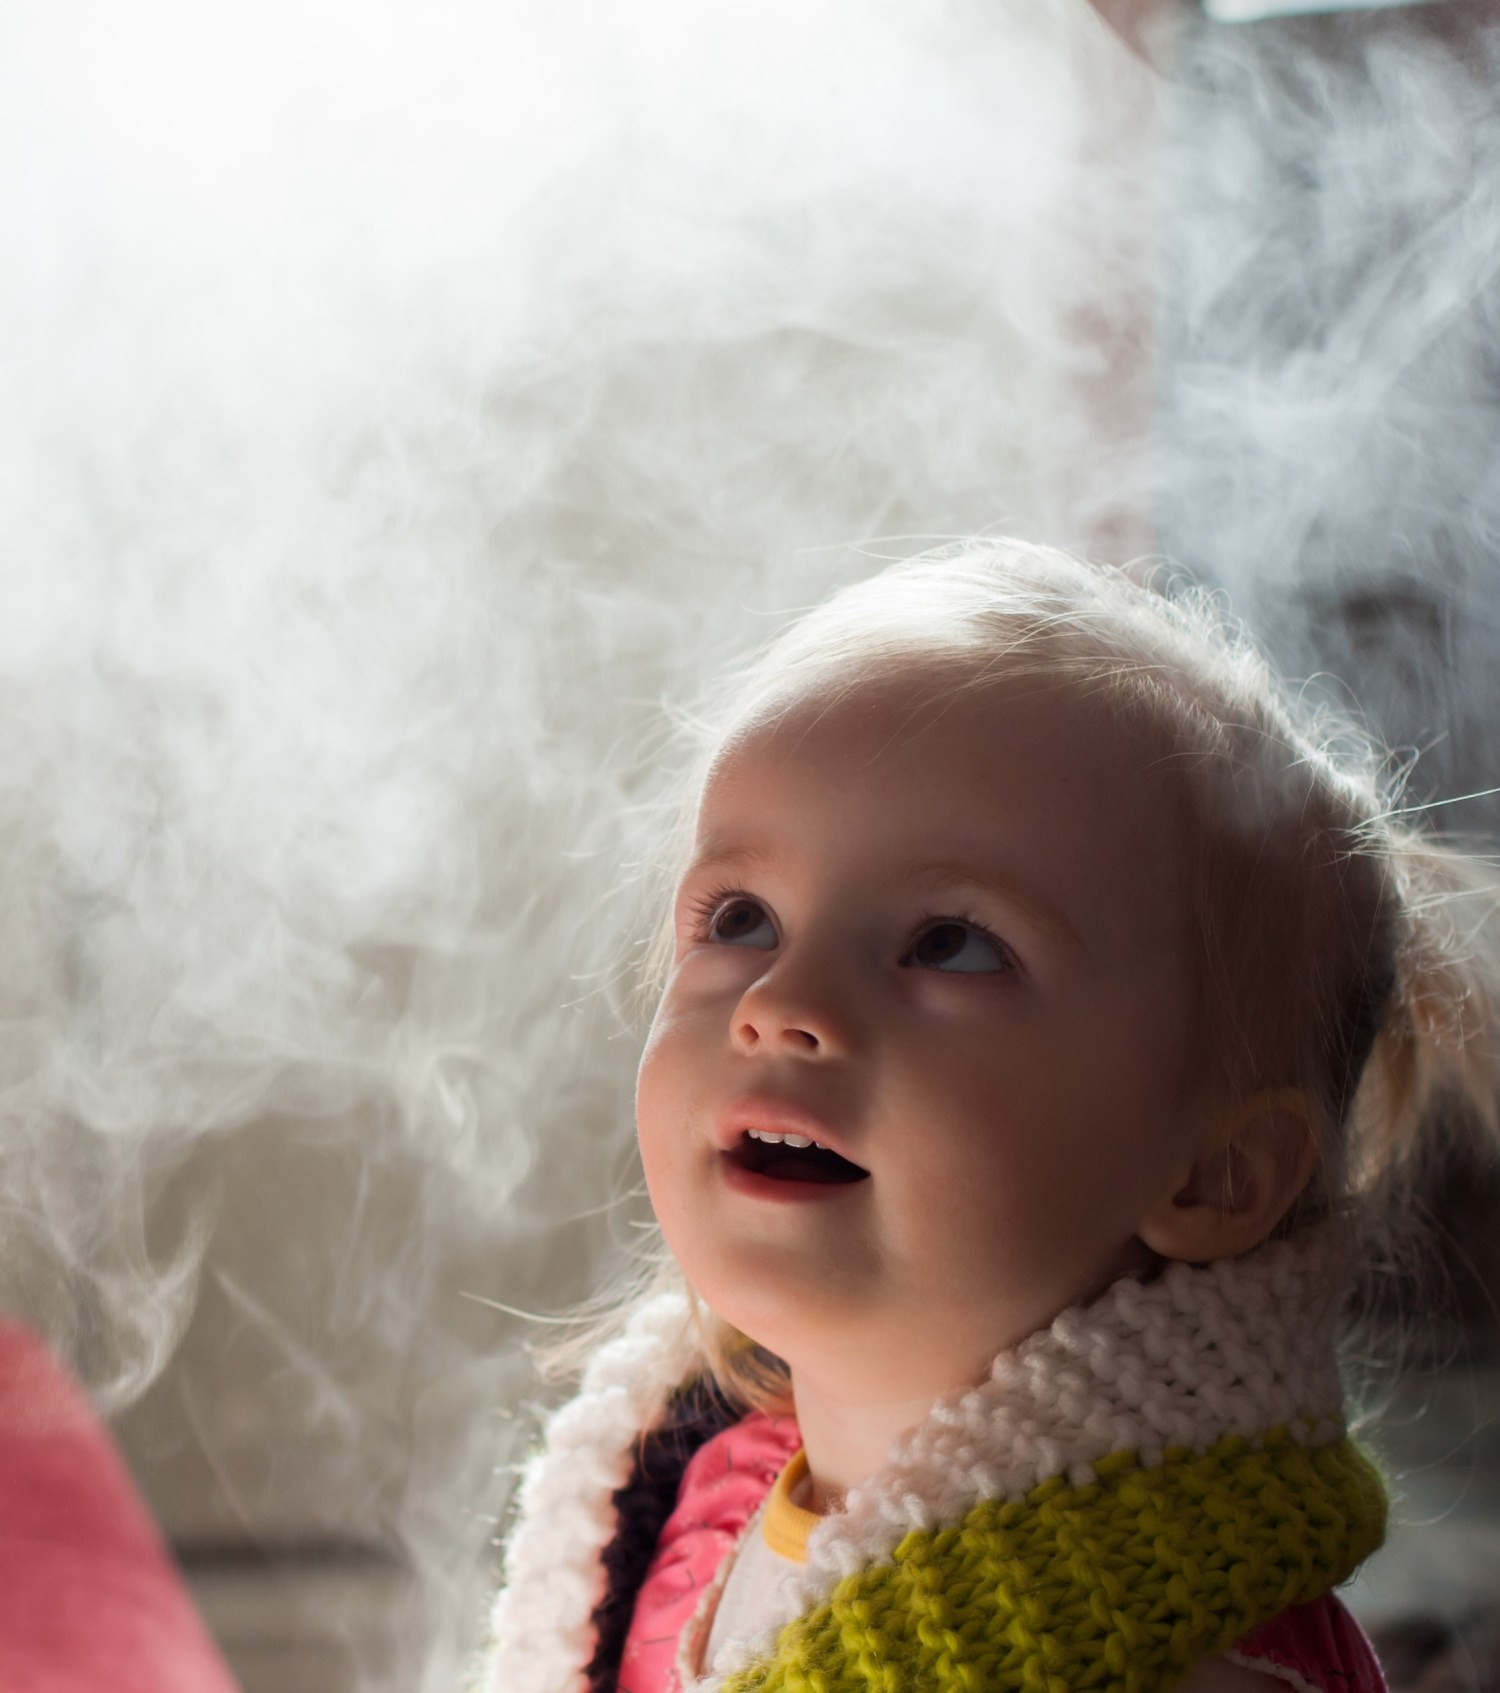 ASTHMA-baby-clean-air-home-shutterstock_127379123